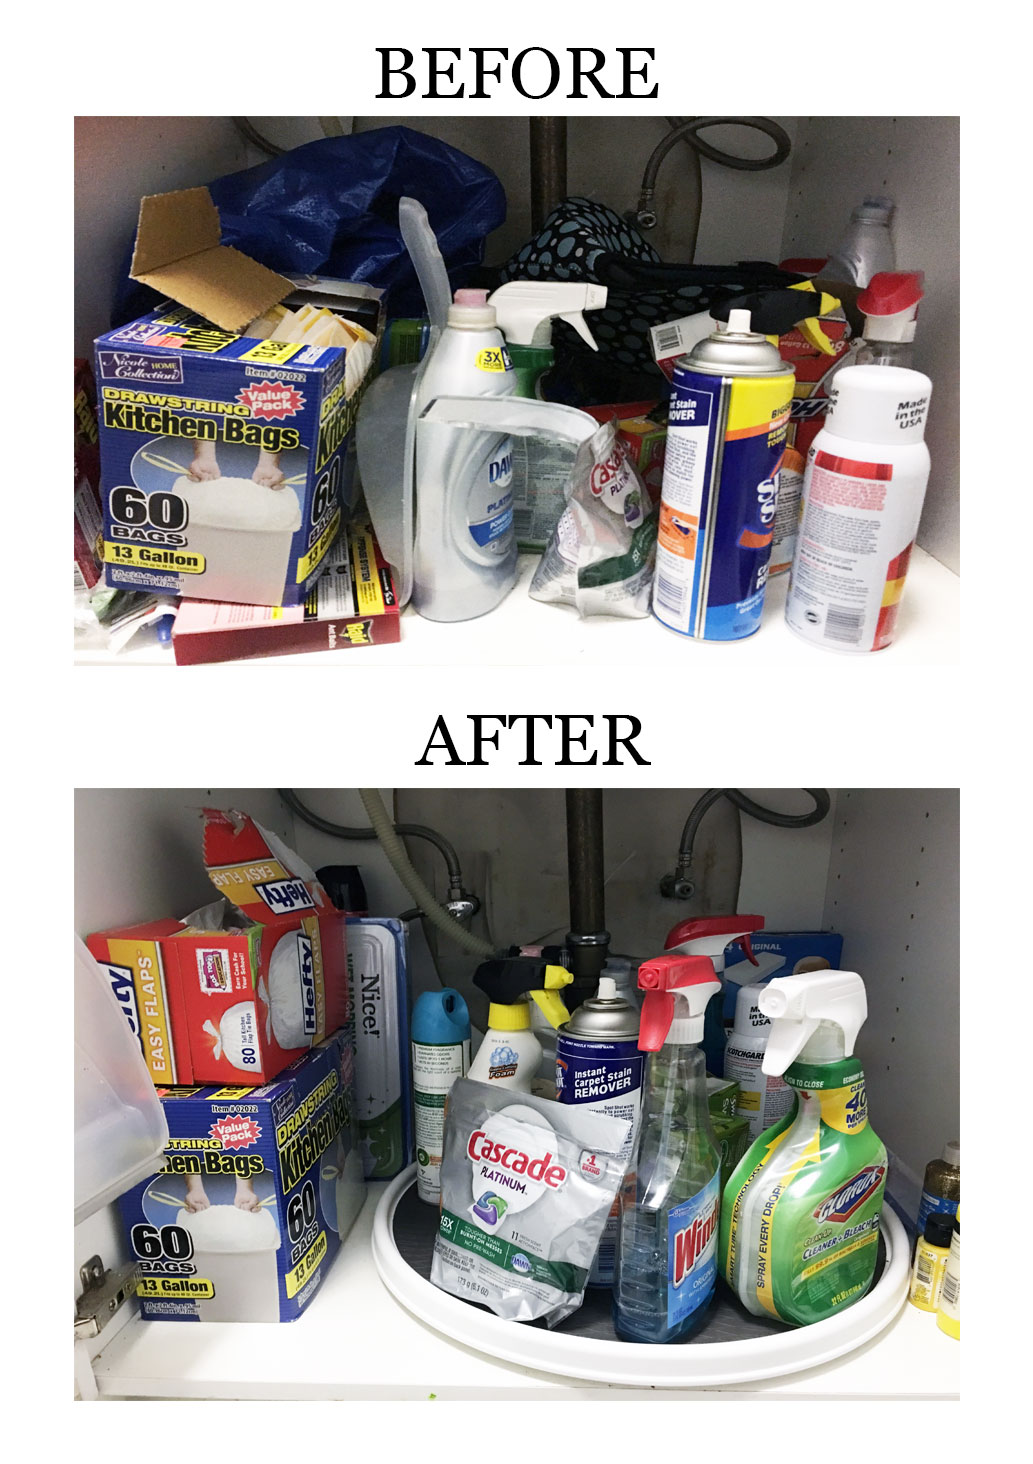 Learn how to organize under your sink with budget-friendly solutions. #organizationideas #organization #storageideas #storageideasforsmallspaces #storagesolutions